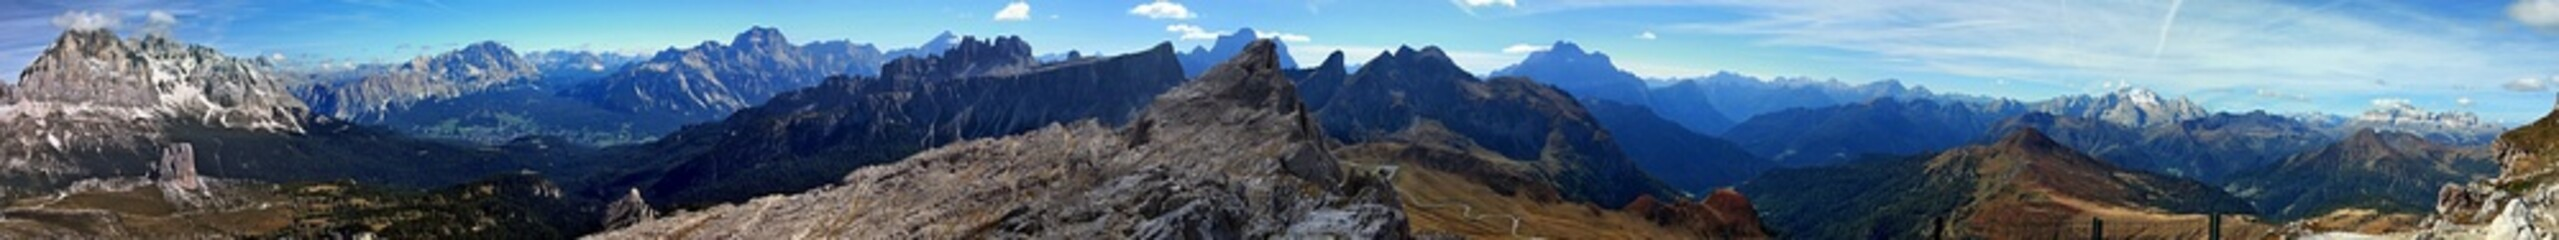 spectacular view from Nuvolau peak